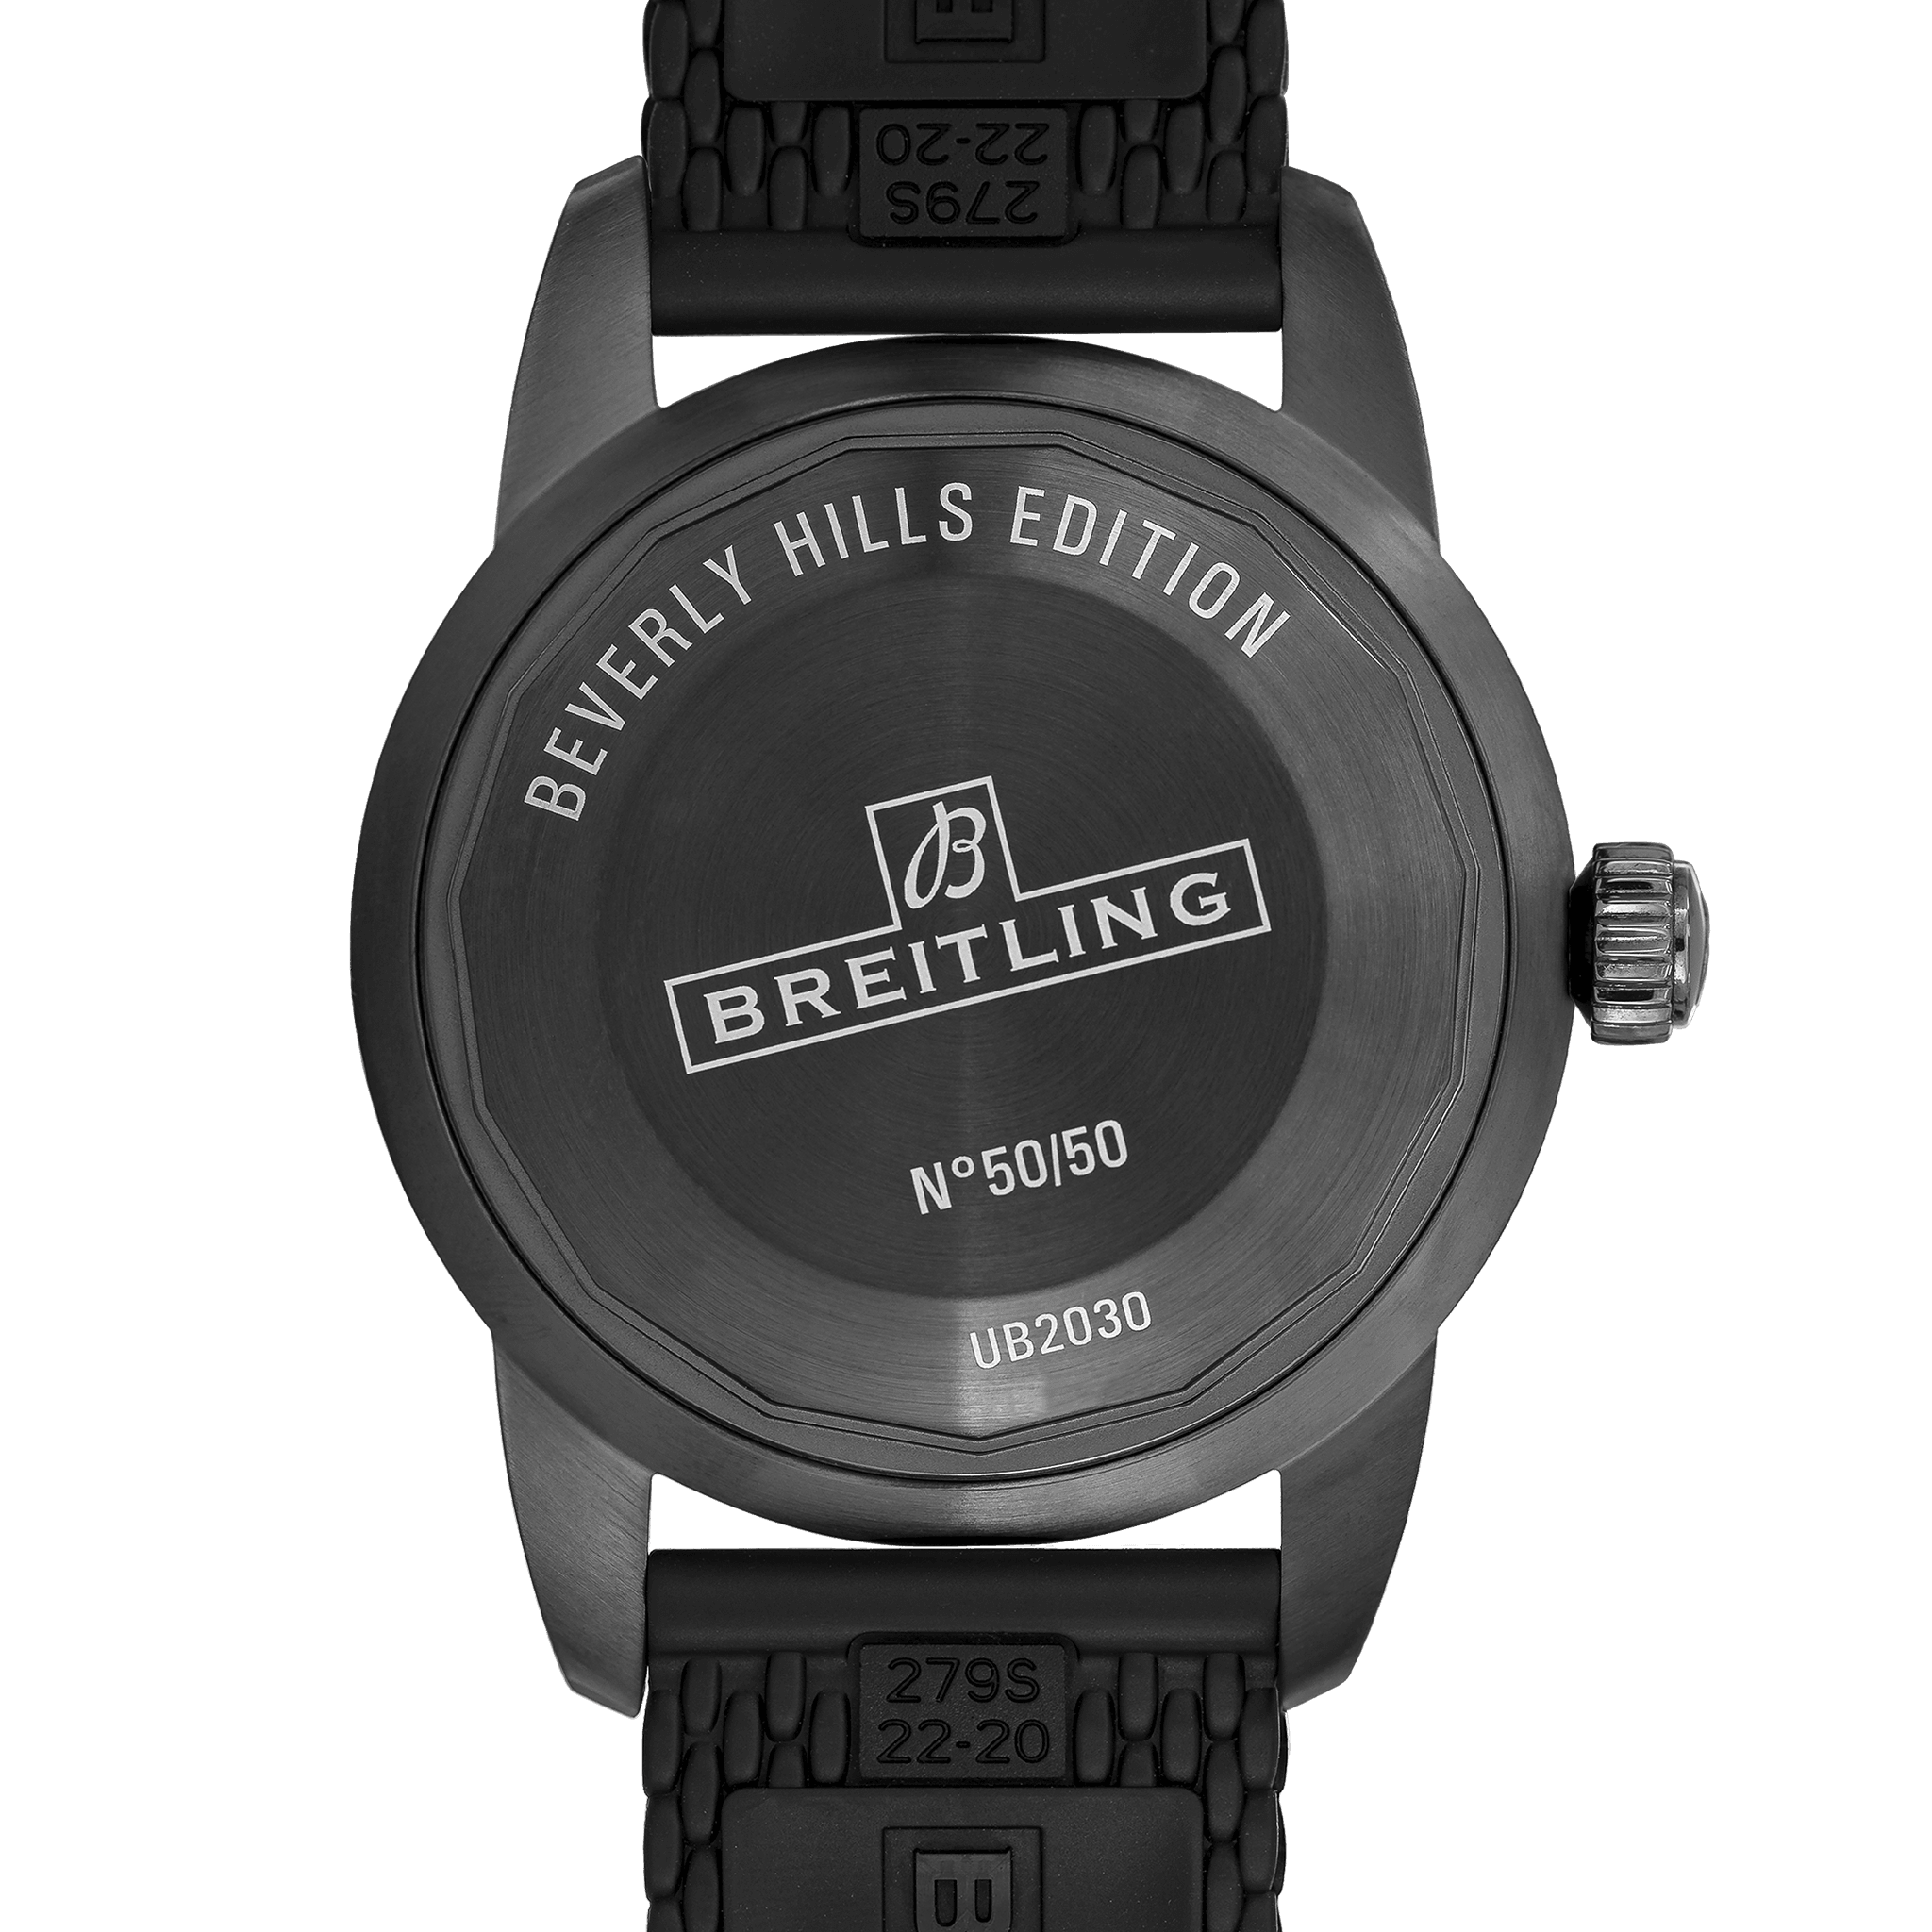 https://www.breitling.com/media/image/1/gallery_square/asset-version-09d24a90a0/ub20303a1b1s1-superocean-heritage-b20-automatic-44-berverly-hills-limited-edition-back.png